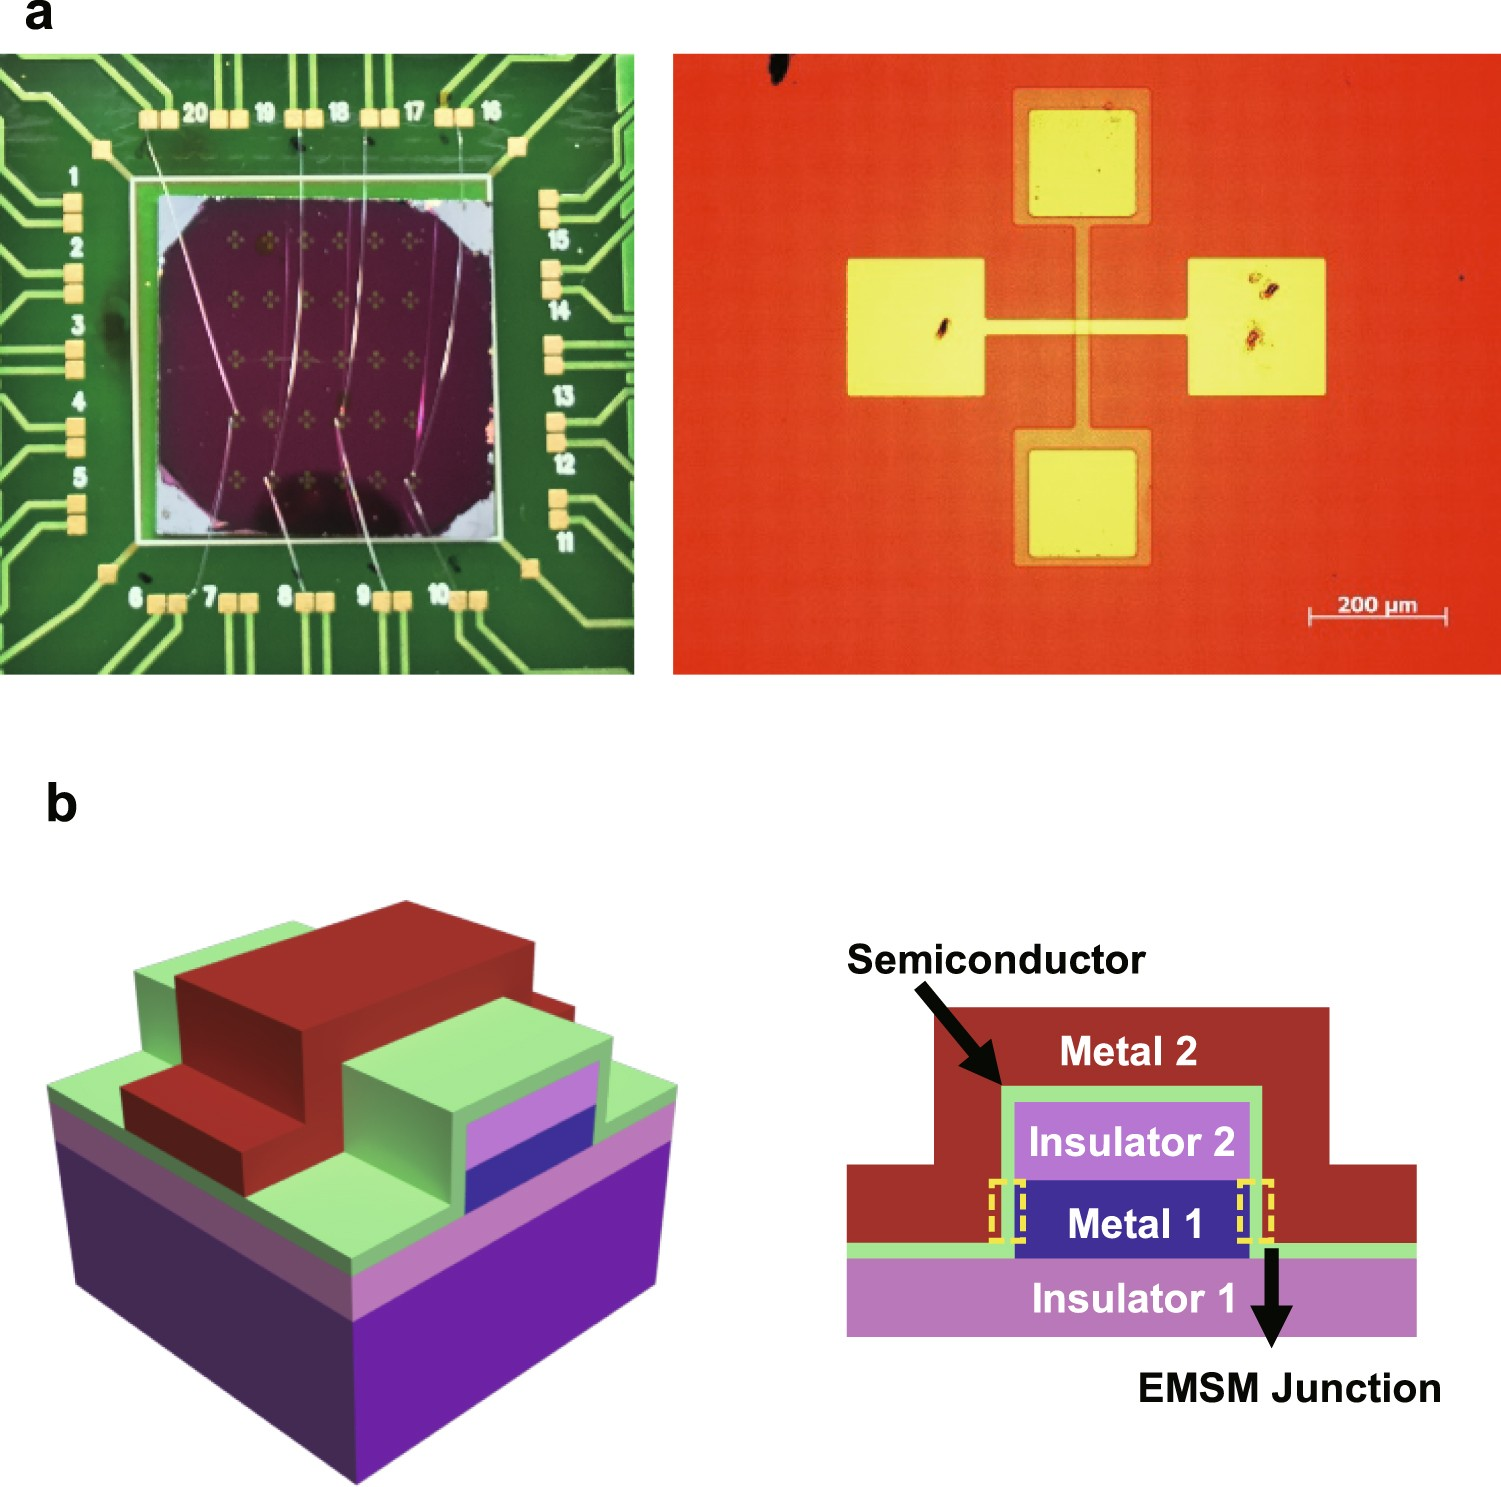 Highly Sensitive Thin Film Thz Detector Based On Edge Metal Figure 40 Millimeterwave Cmos Envelope Circuits Semiconductor Junction Scientific Reports